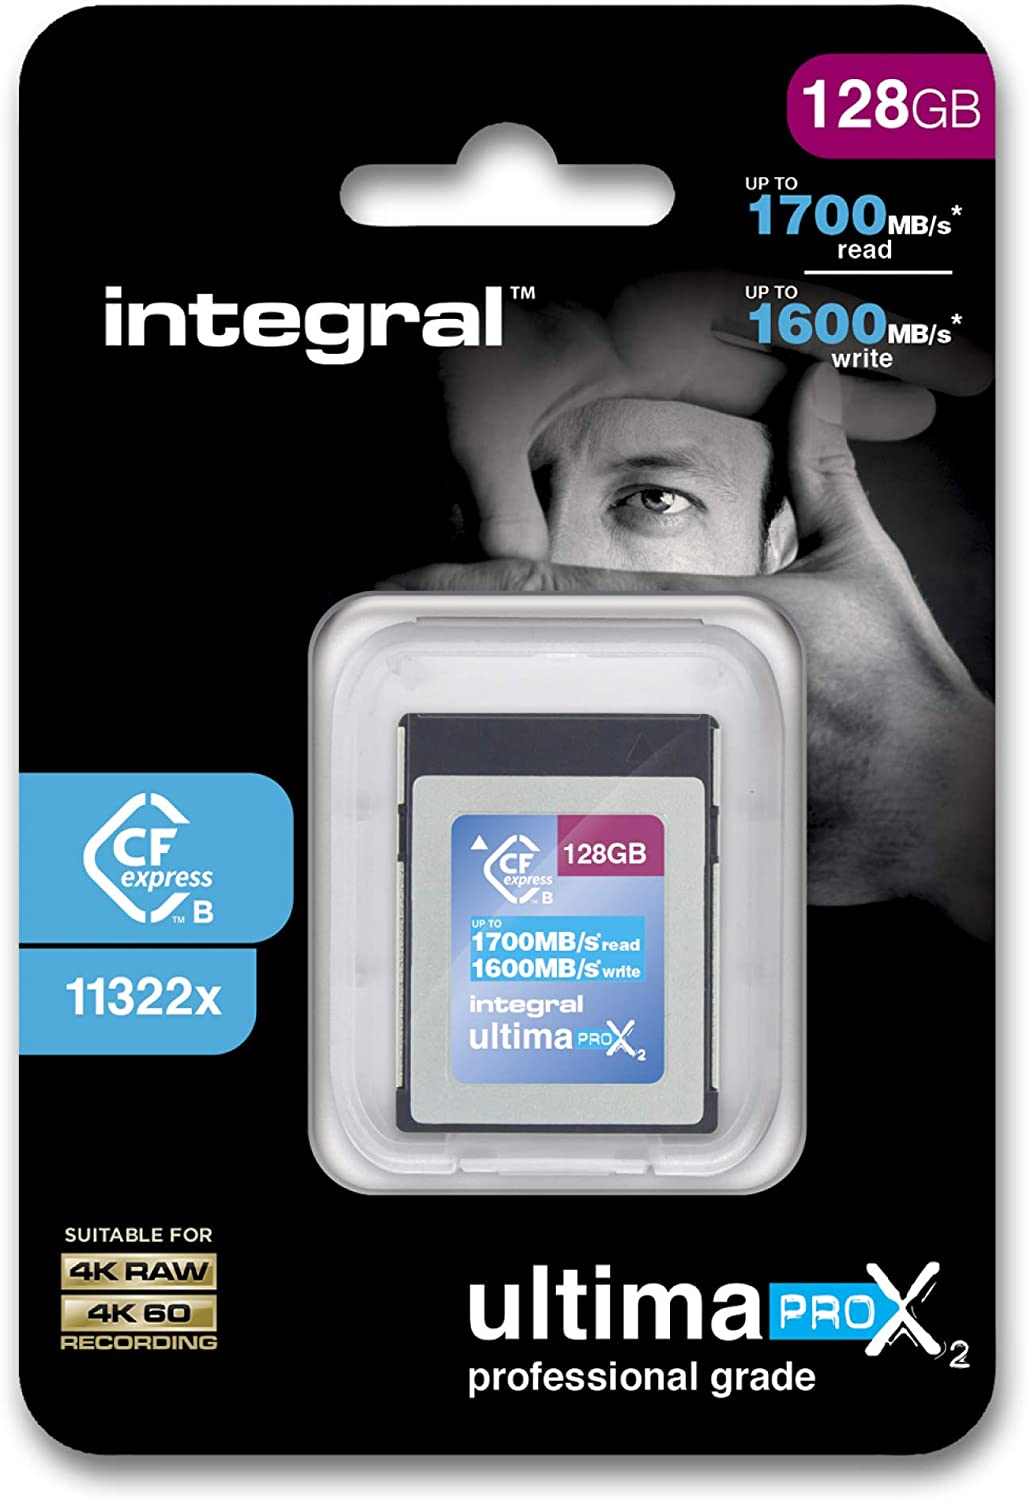 Integral 1TB CFexpress Memory Card Type B 2.0 1700MB//s Read 1600MB//s Write Speed Designed for the Professional Photographer and Cinematographer